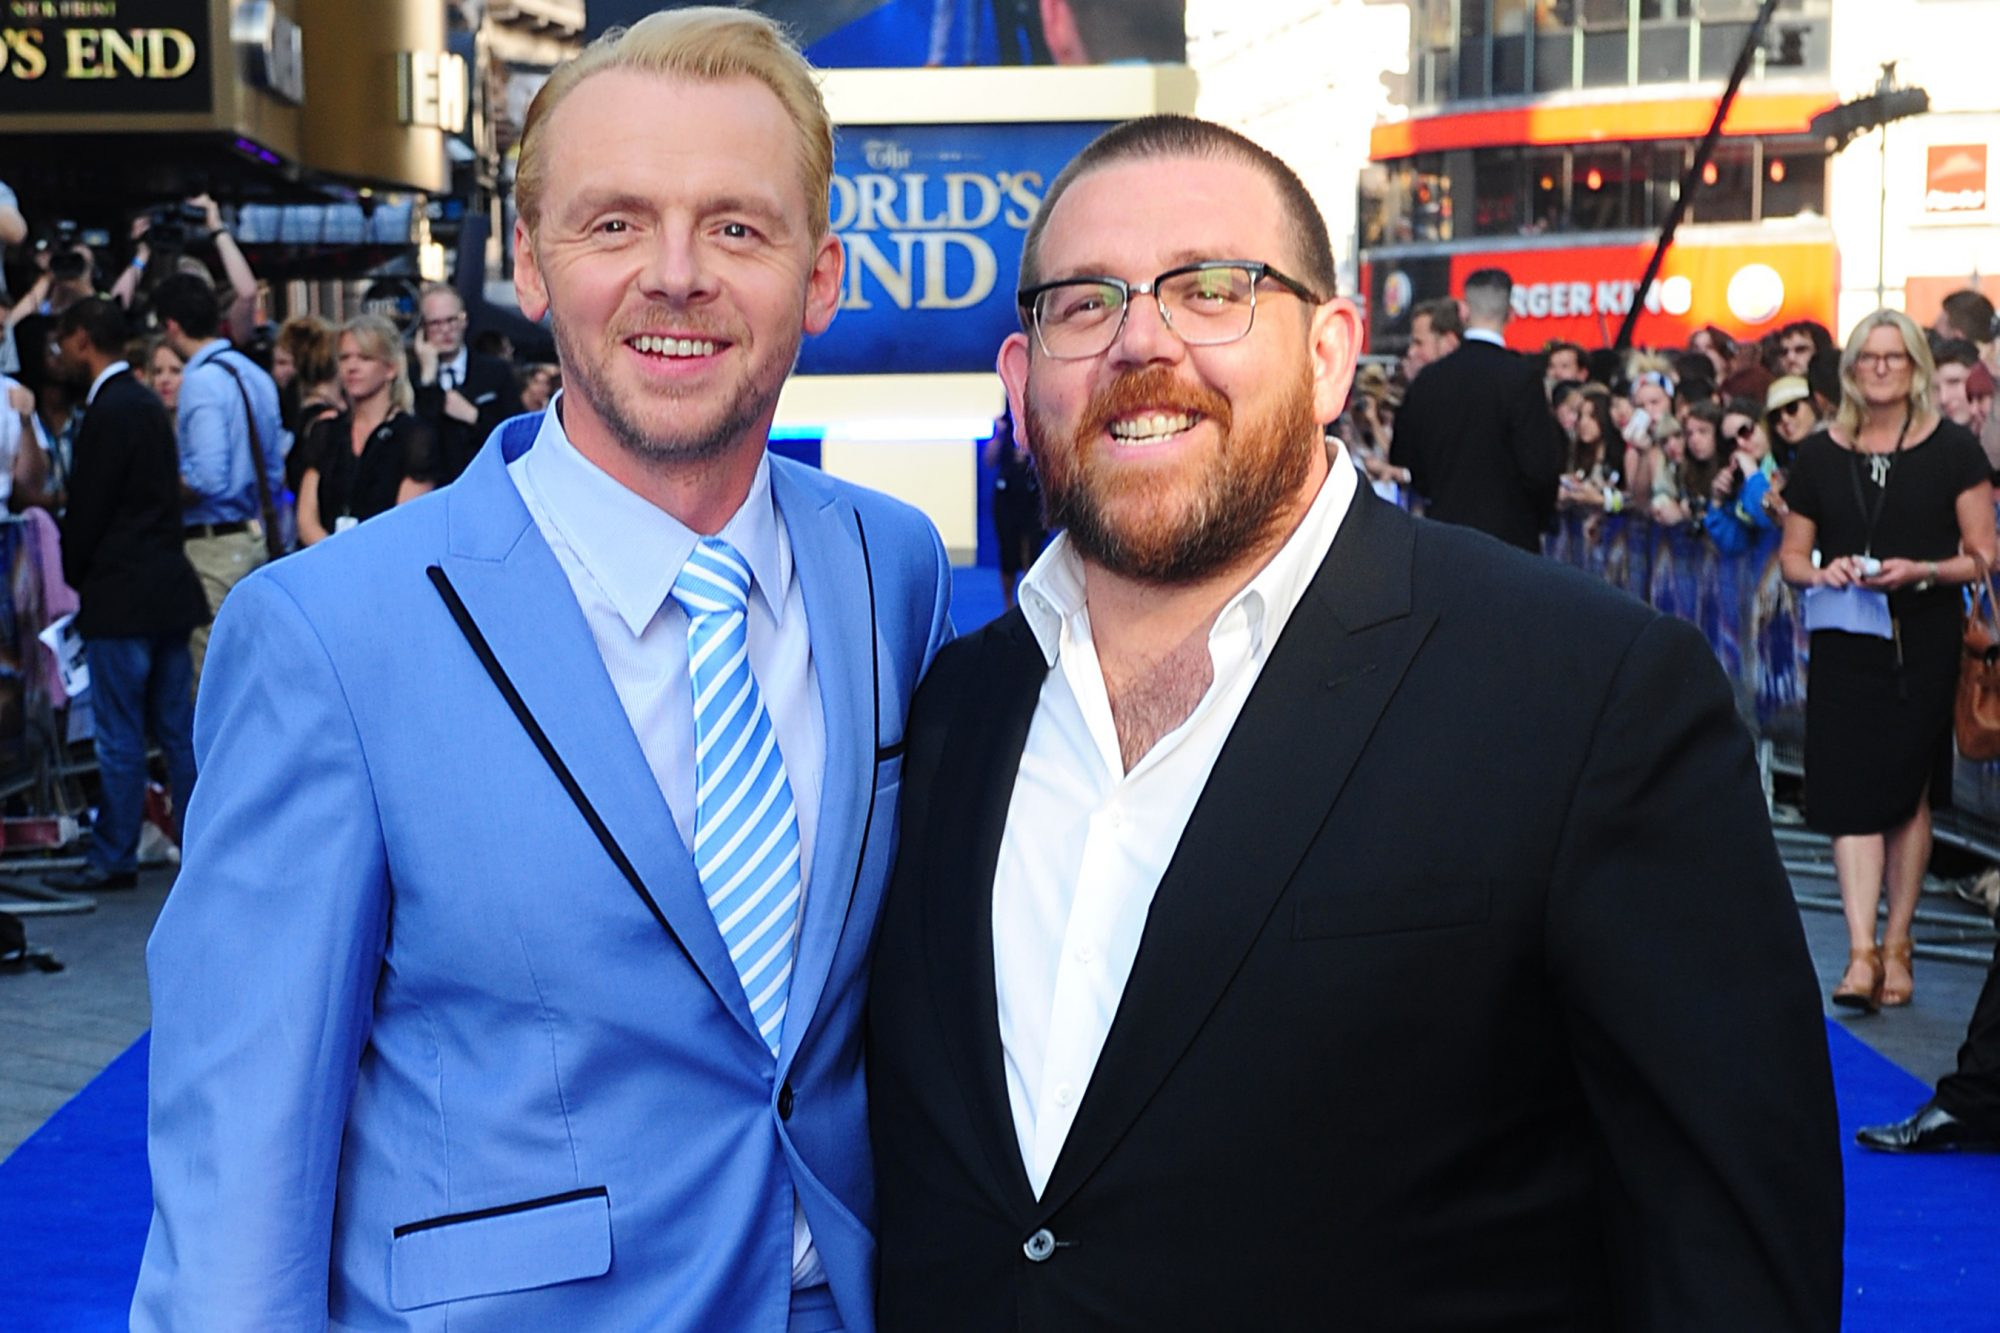 The World's End Premiere - London